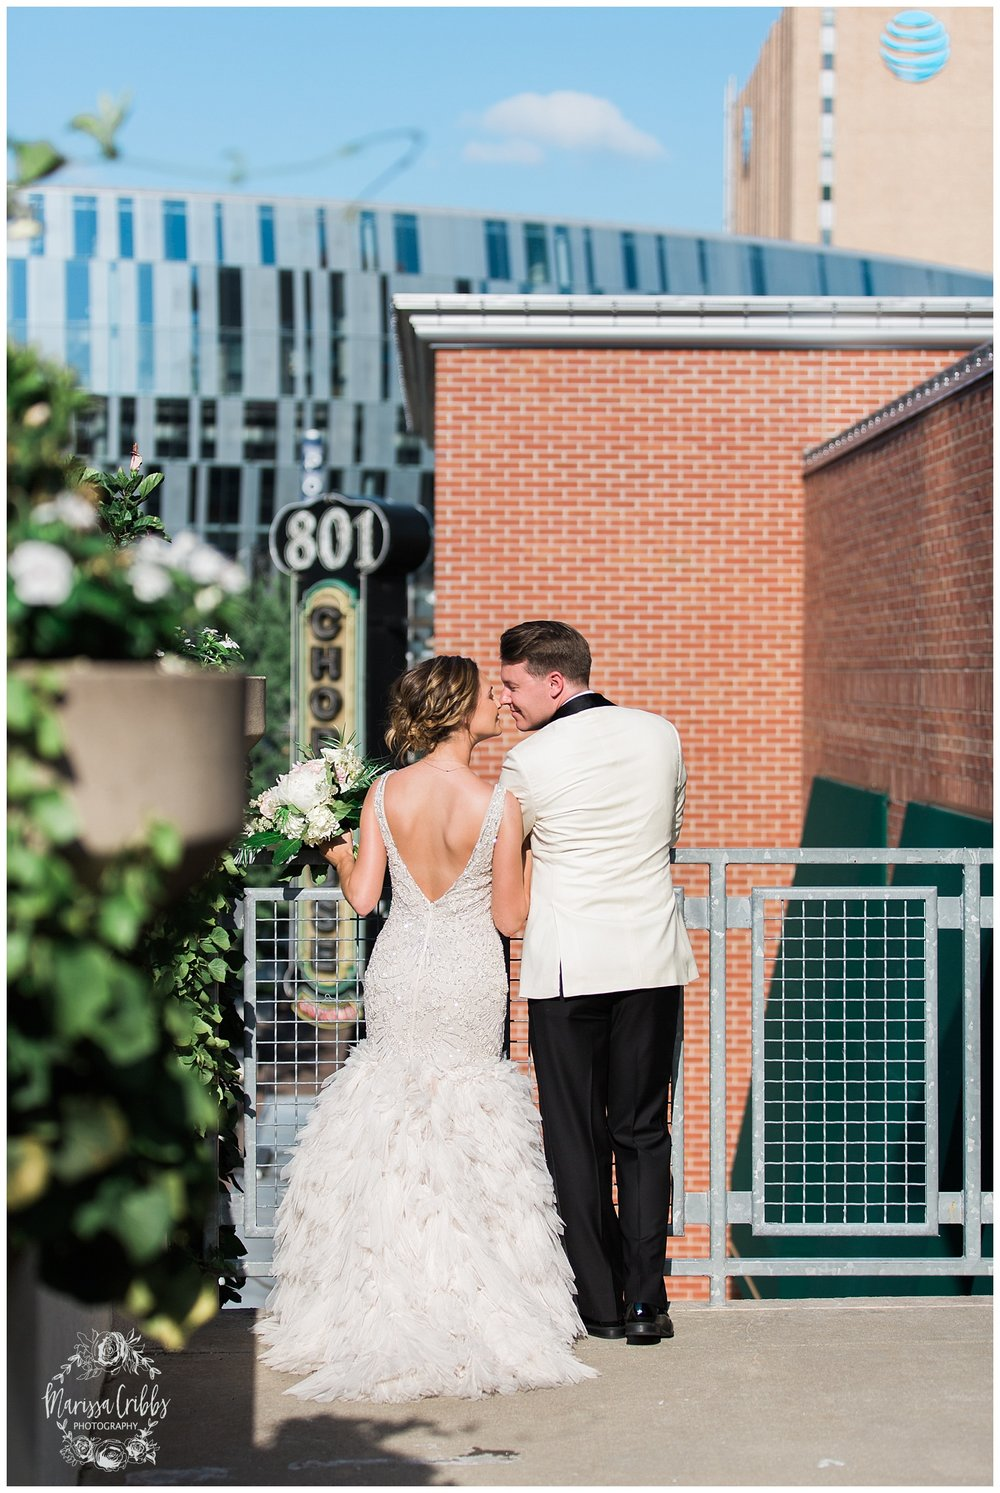 Haley+&+Steven+Reception+|+The+Gallery+Event+Space+|+Marissa+Cribbs+Photography+|+KC+Wedding+Photographers_1589.jpg